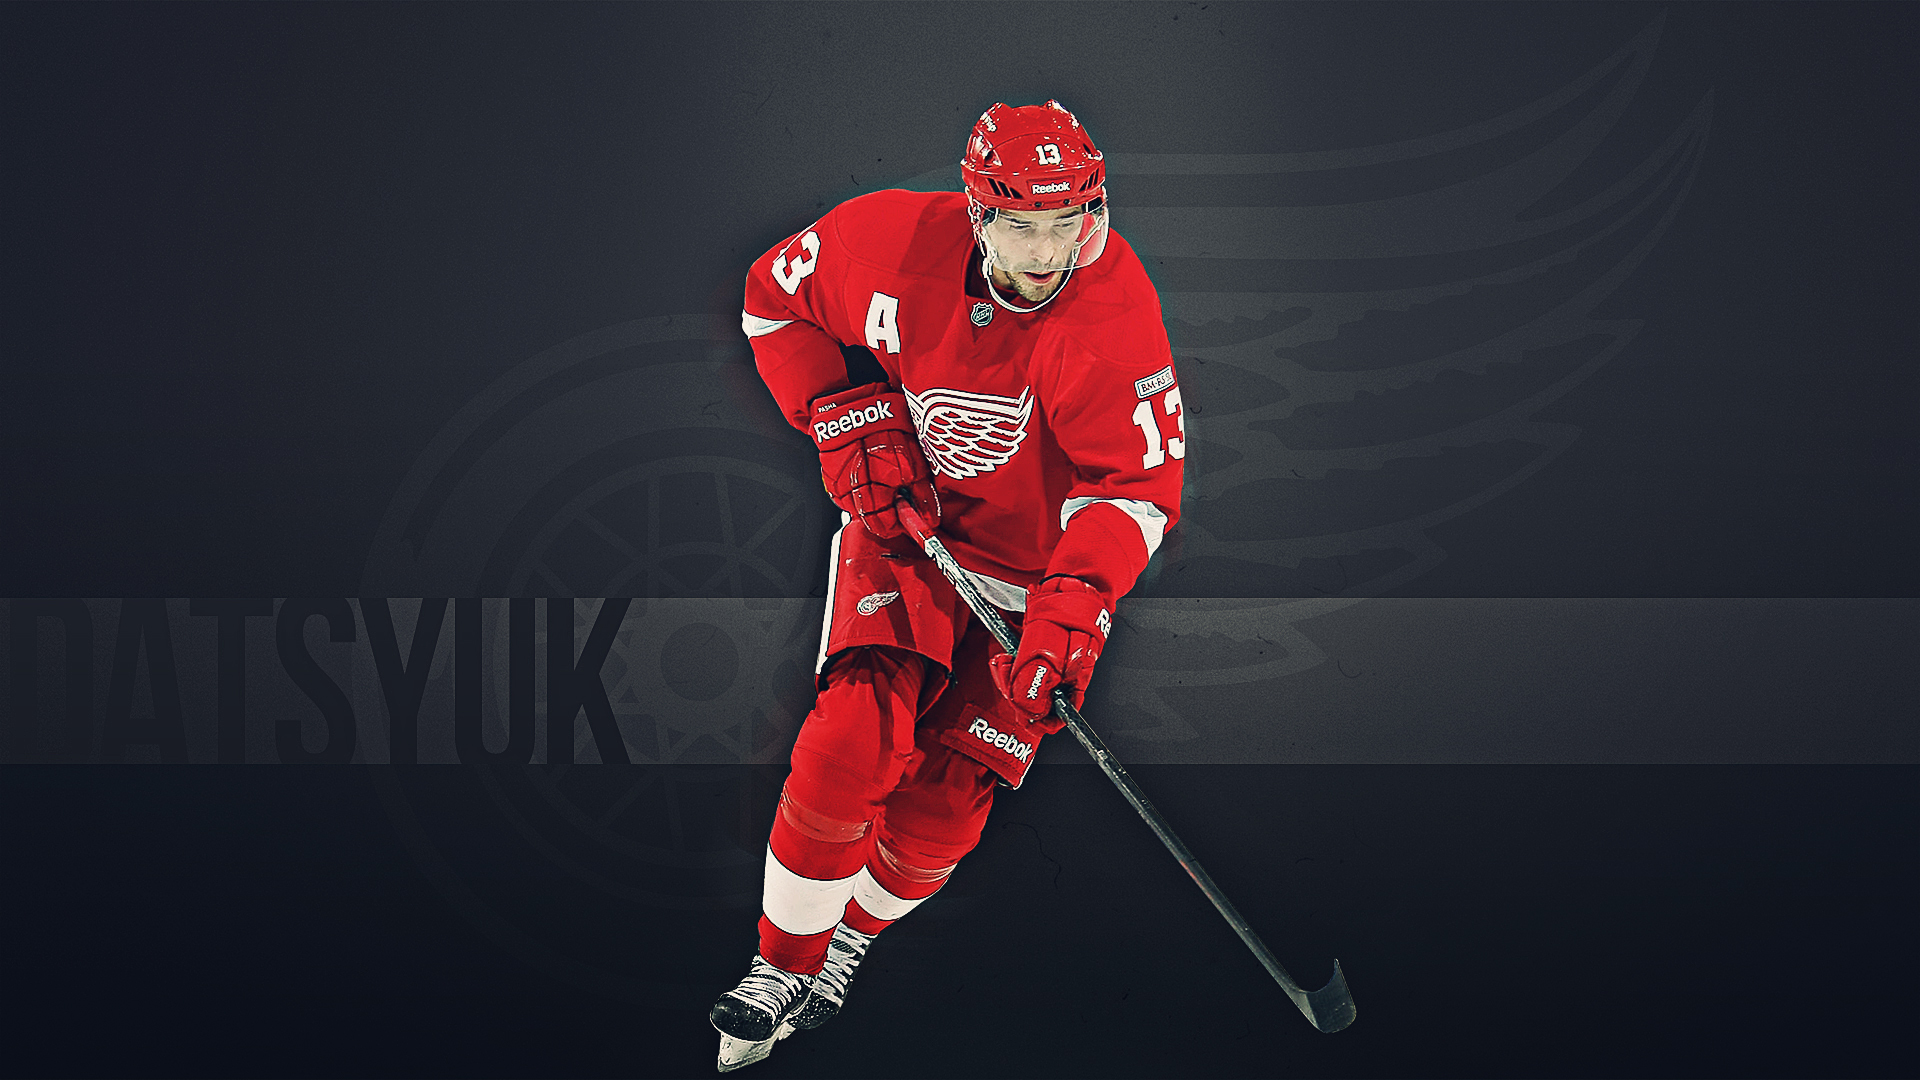 Best Hockey player of Detroit Pavel Datsyuk wallpapers and images 1920x1080